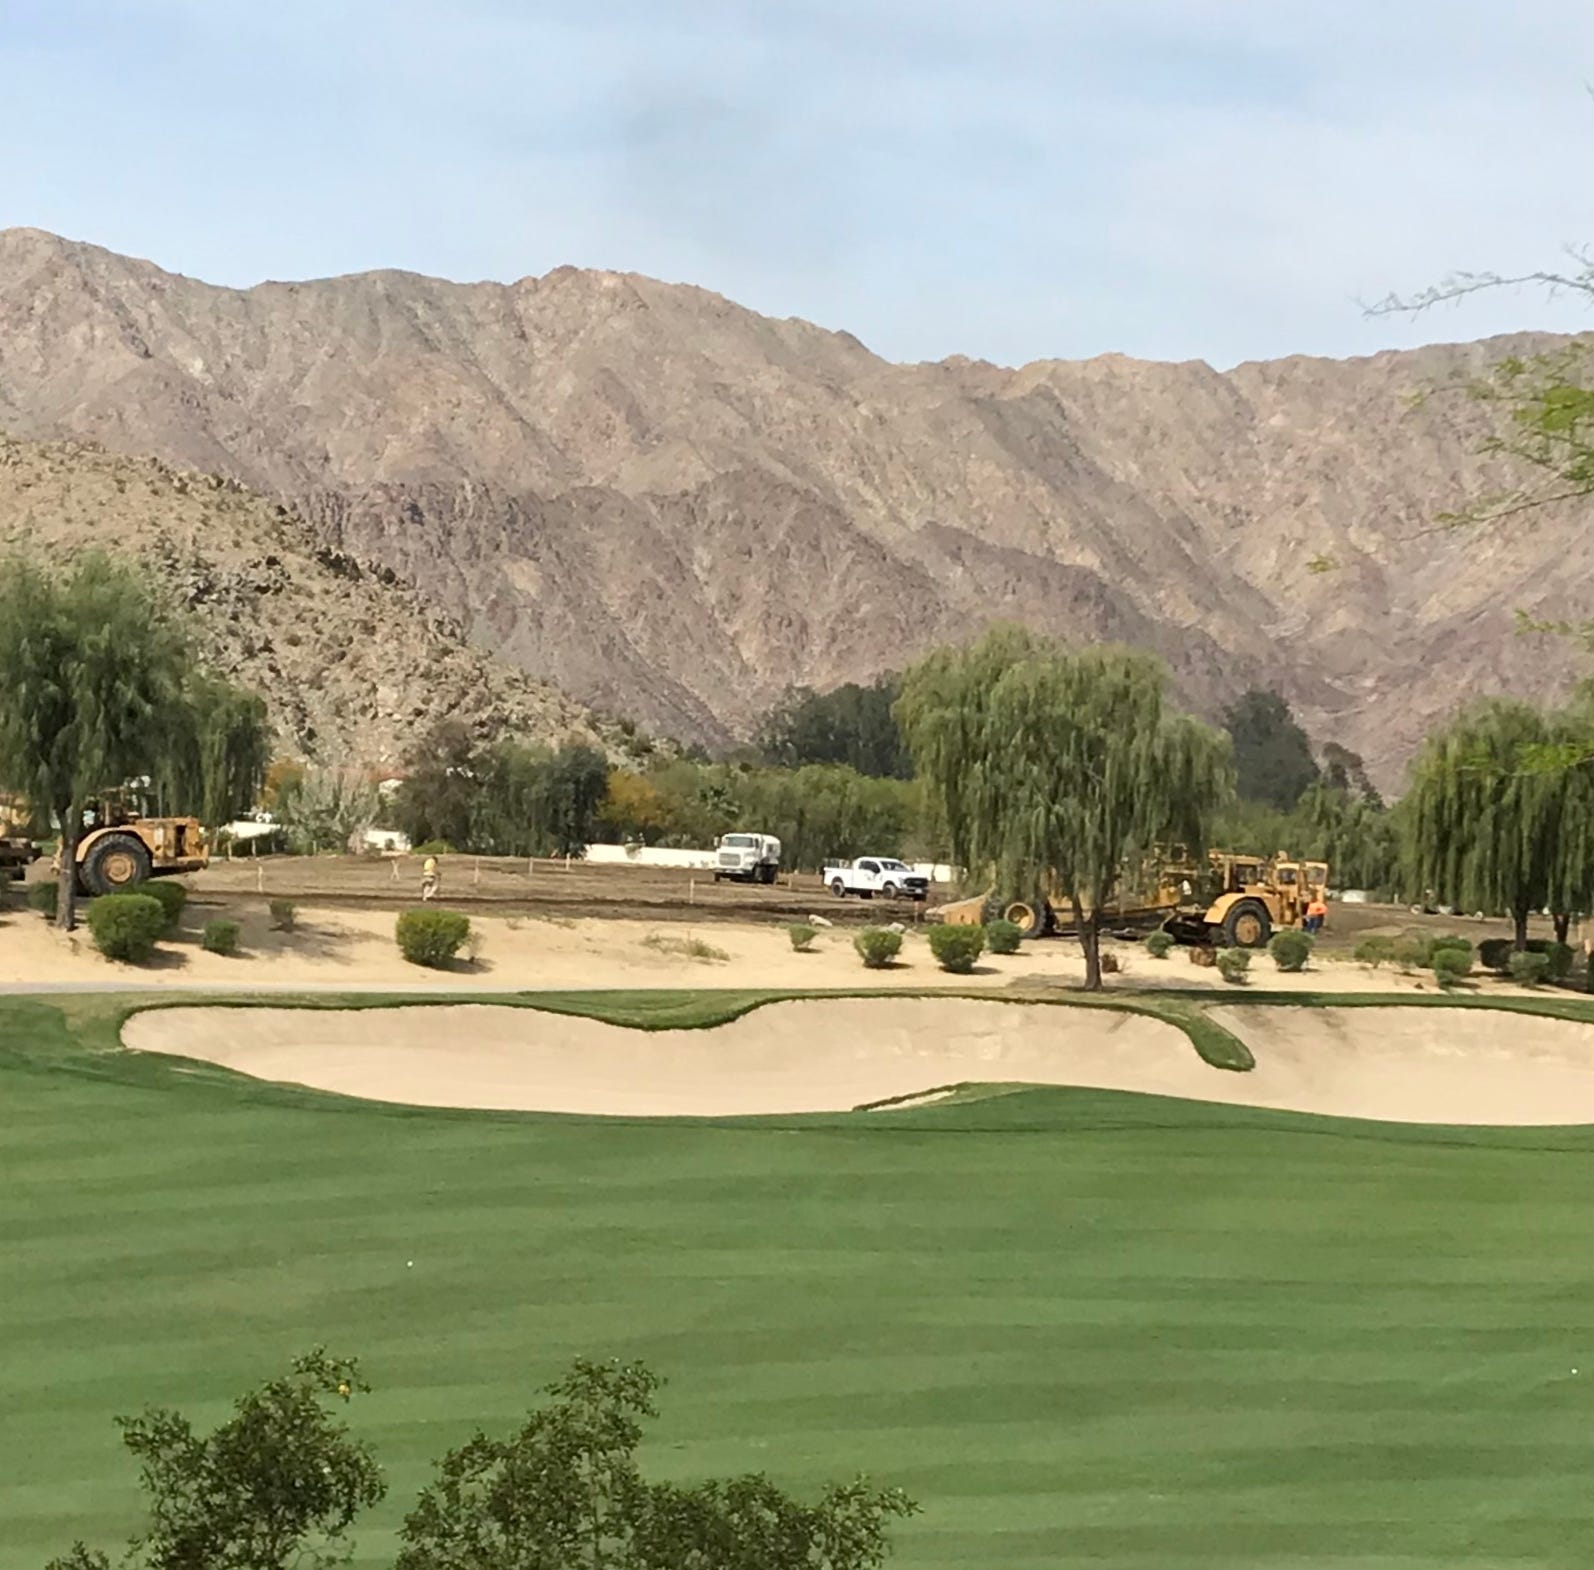 Construction work ramping up for La Quinta's SilverRock resort, future home of Montage International hotel brands